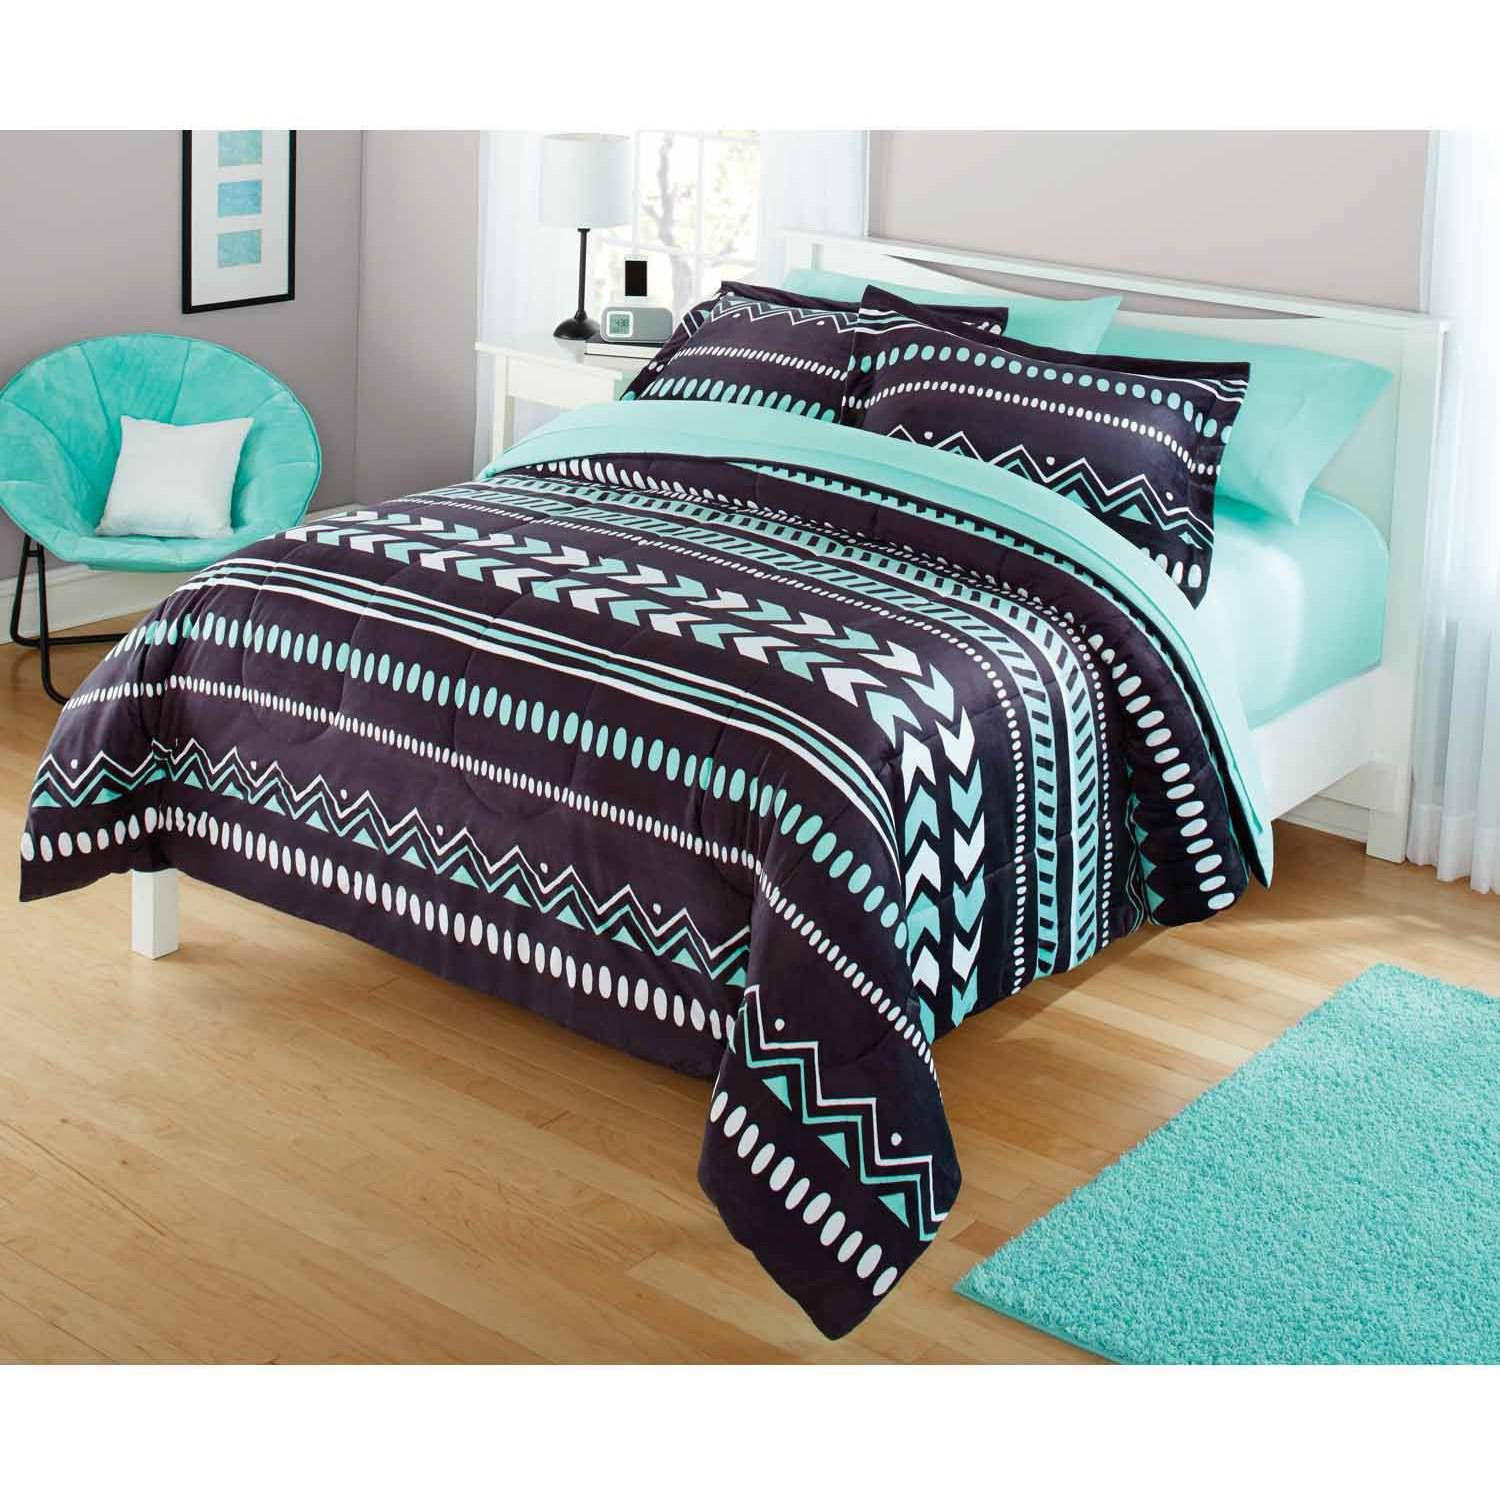 Your Zone Tribal Bedding Comforter Set - Walmart.com ...